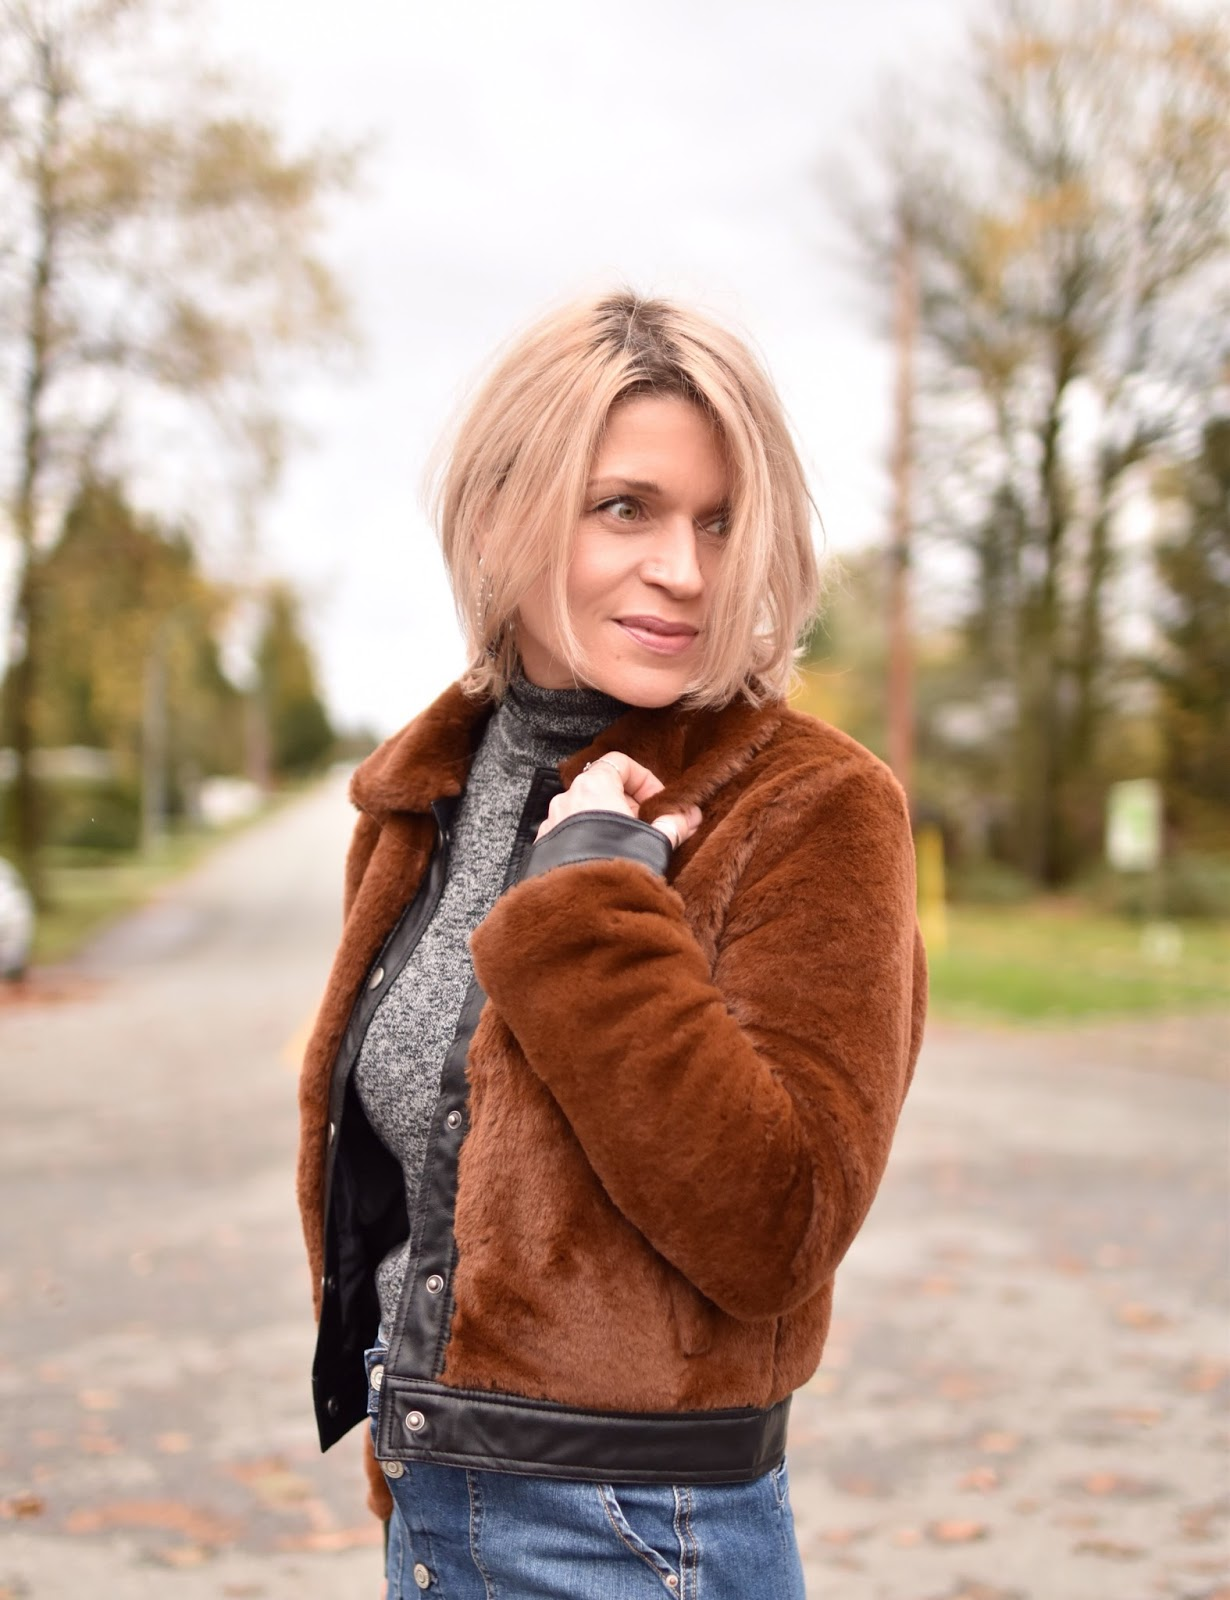 Monika Faulkner outfit inspiration - faux-fur bomber jacket, grey marled turtleneck sweater